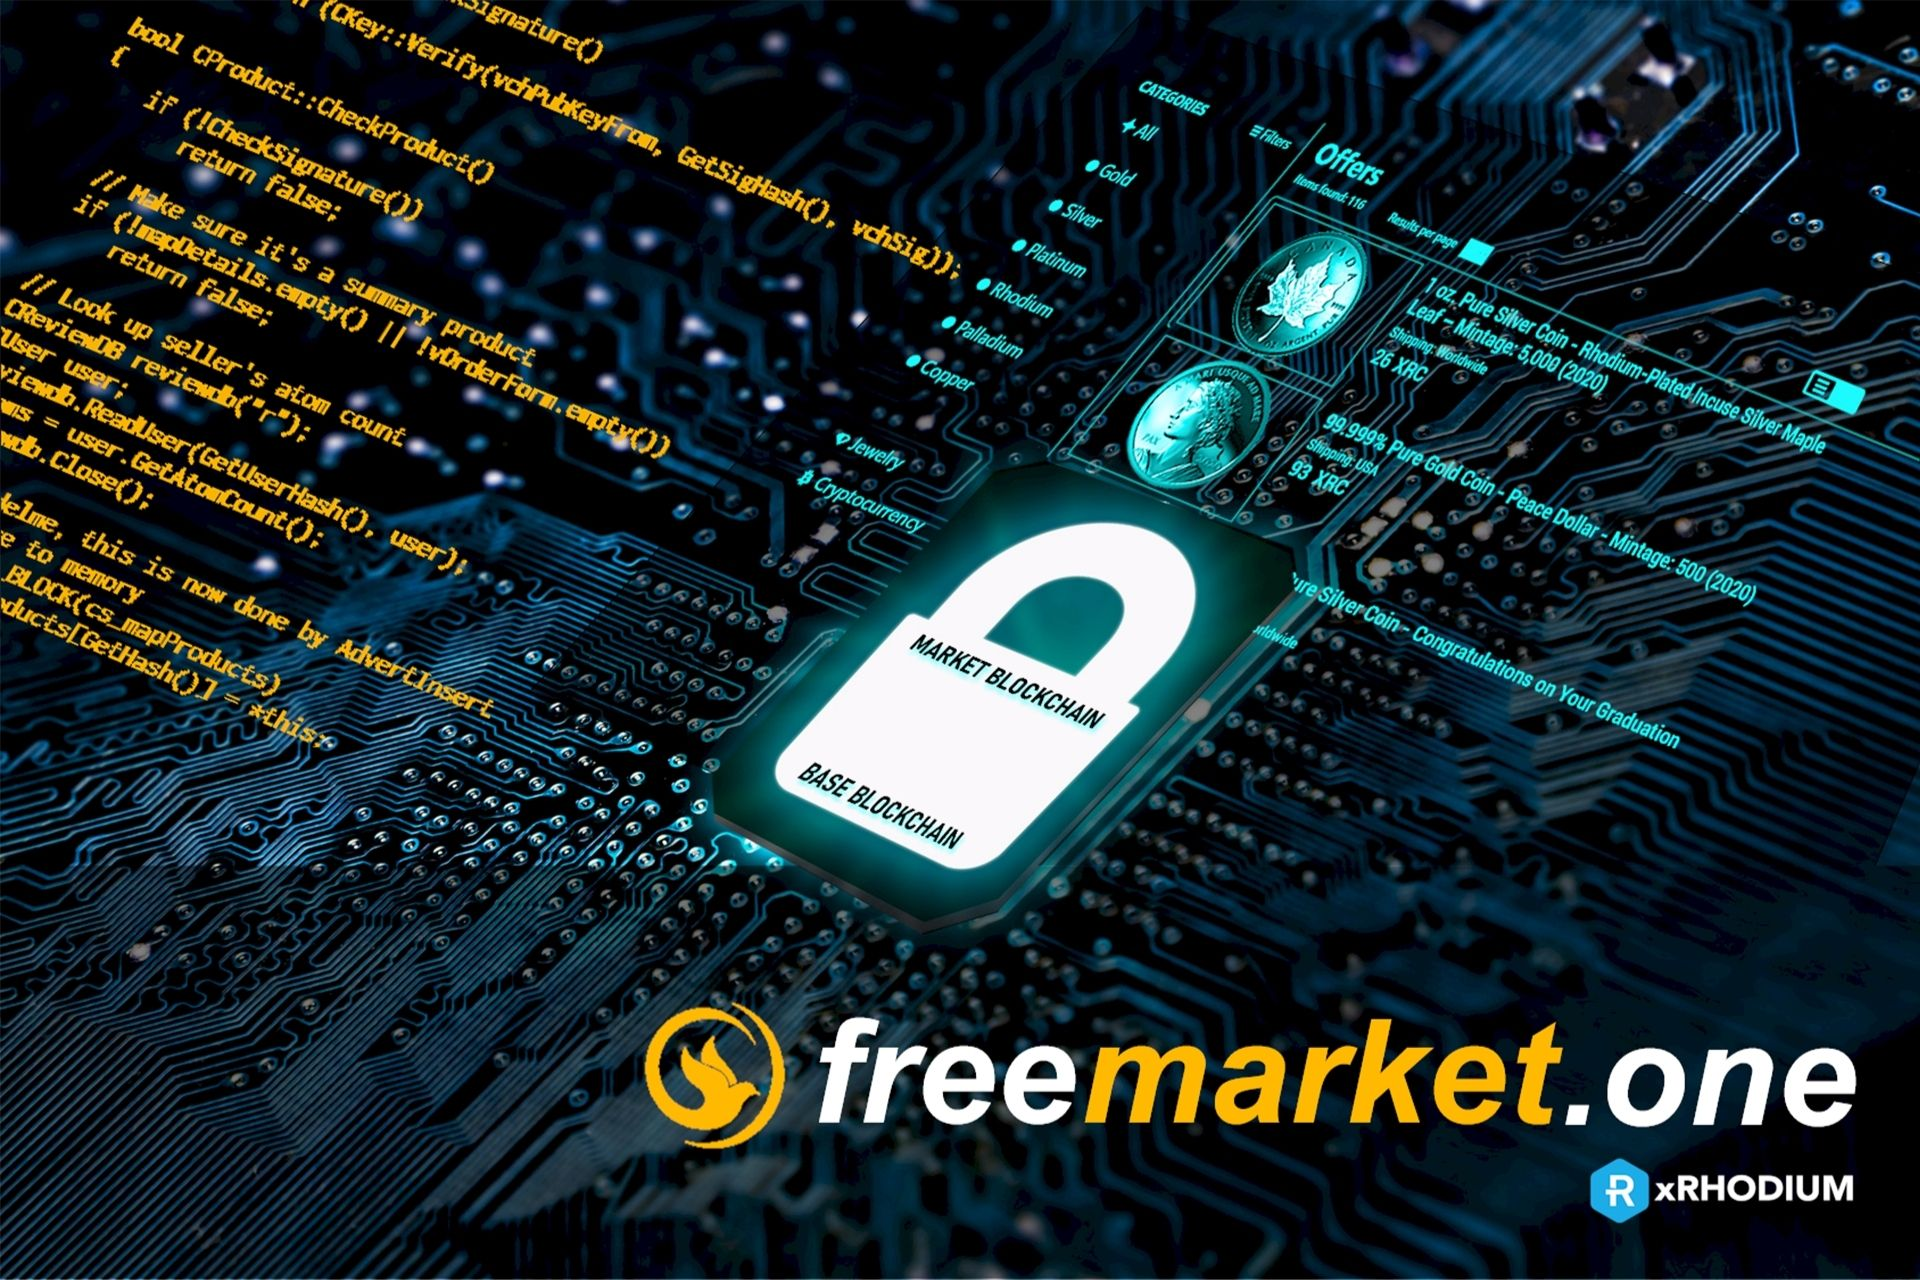 FreeMarketOne – A Novel Marketplace Delivering Goods and Services with Secure Transactions Between Users